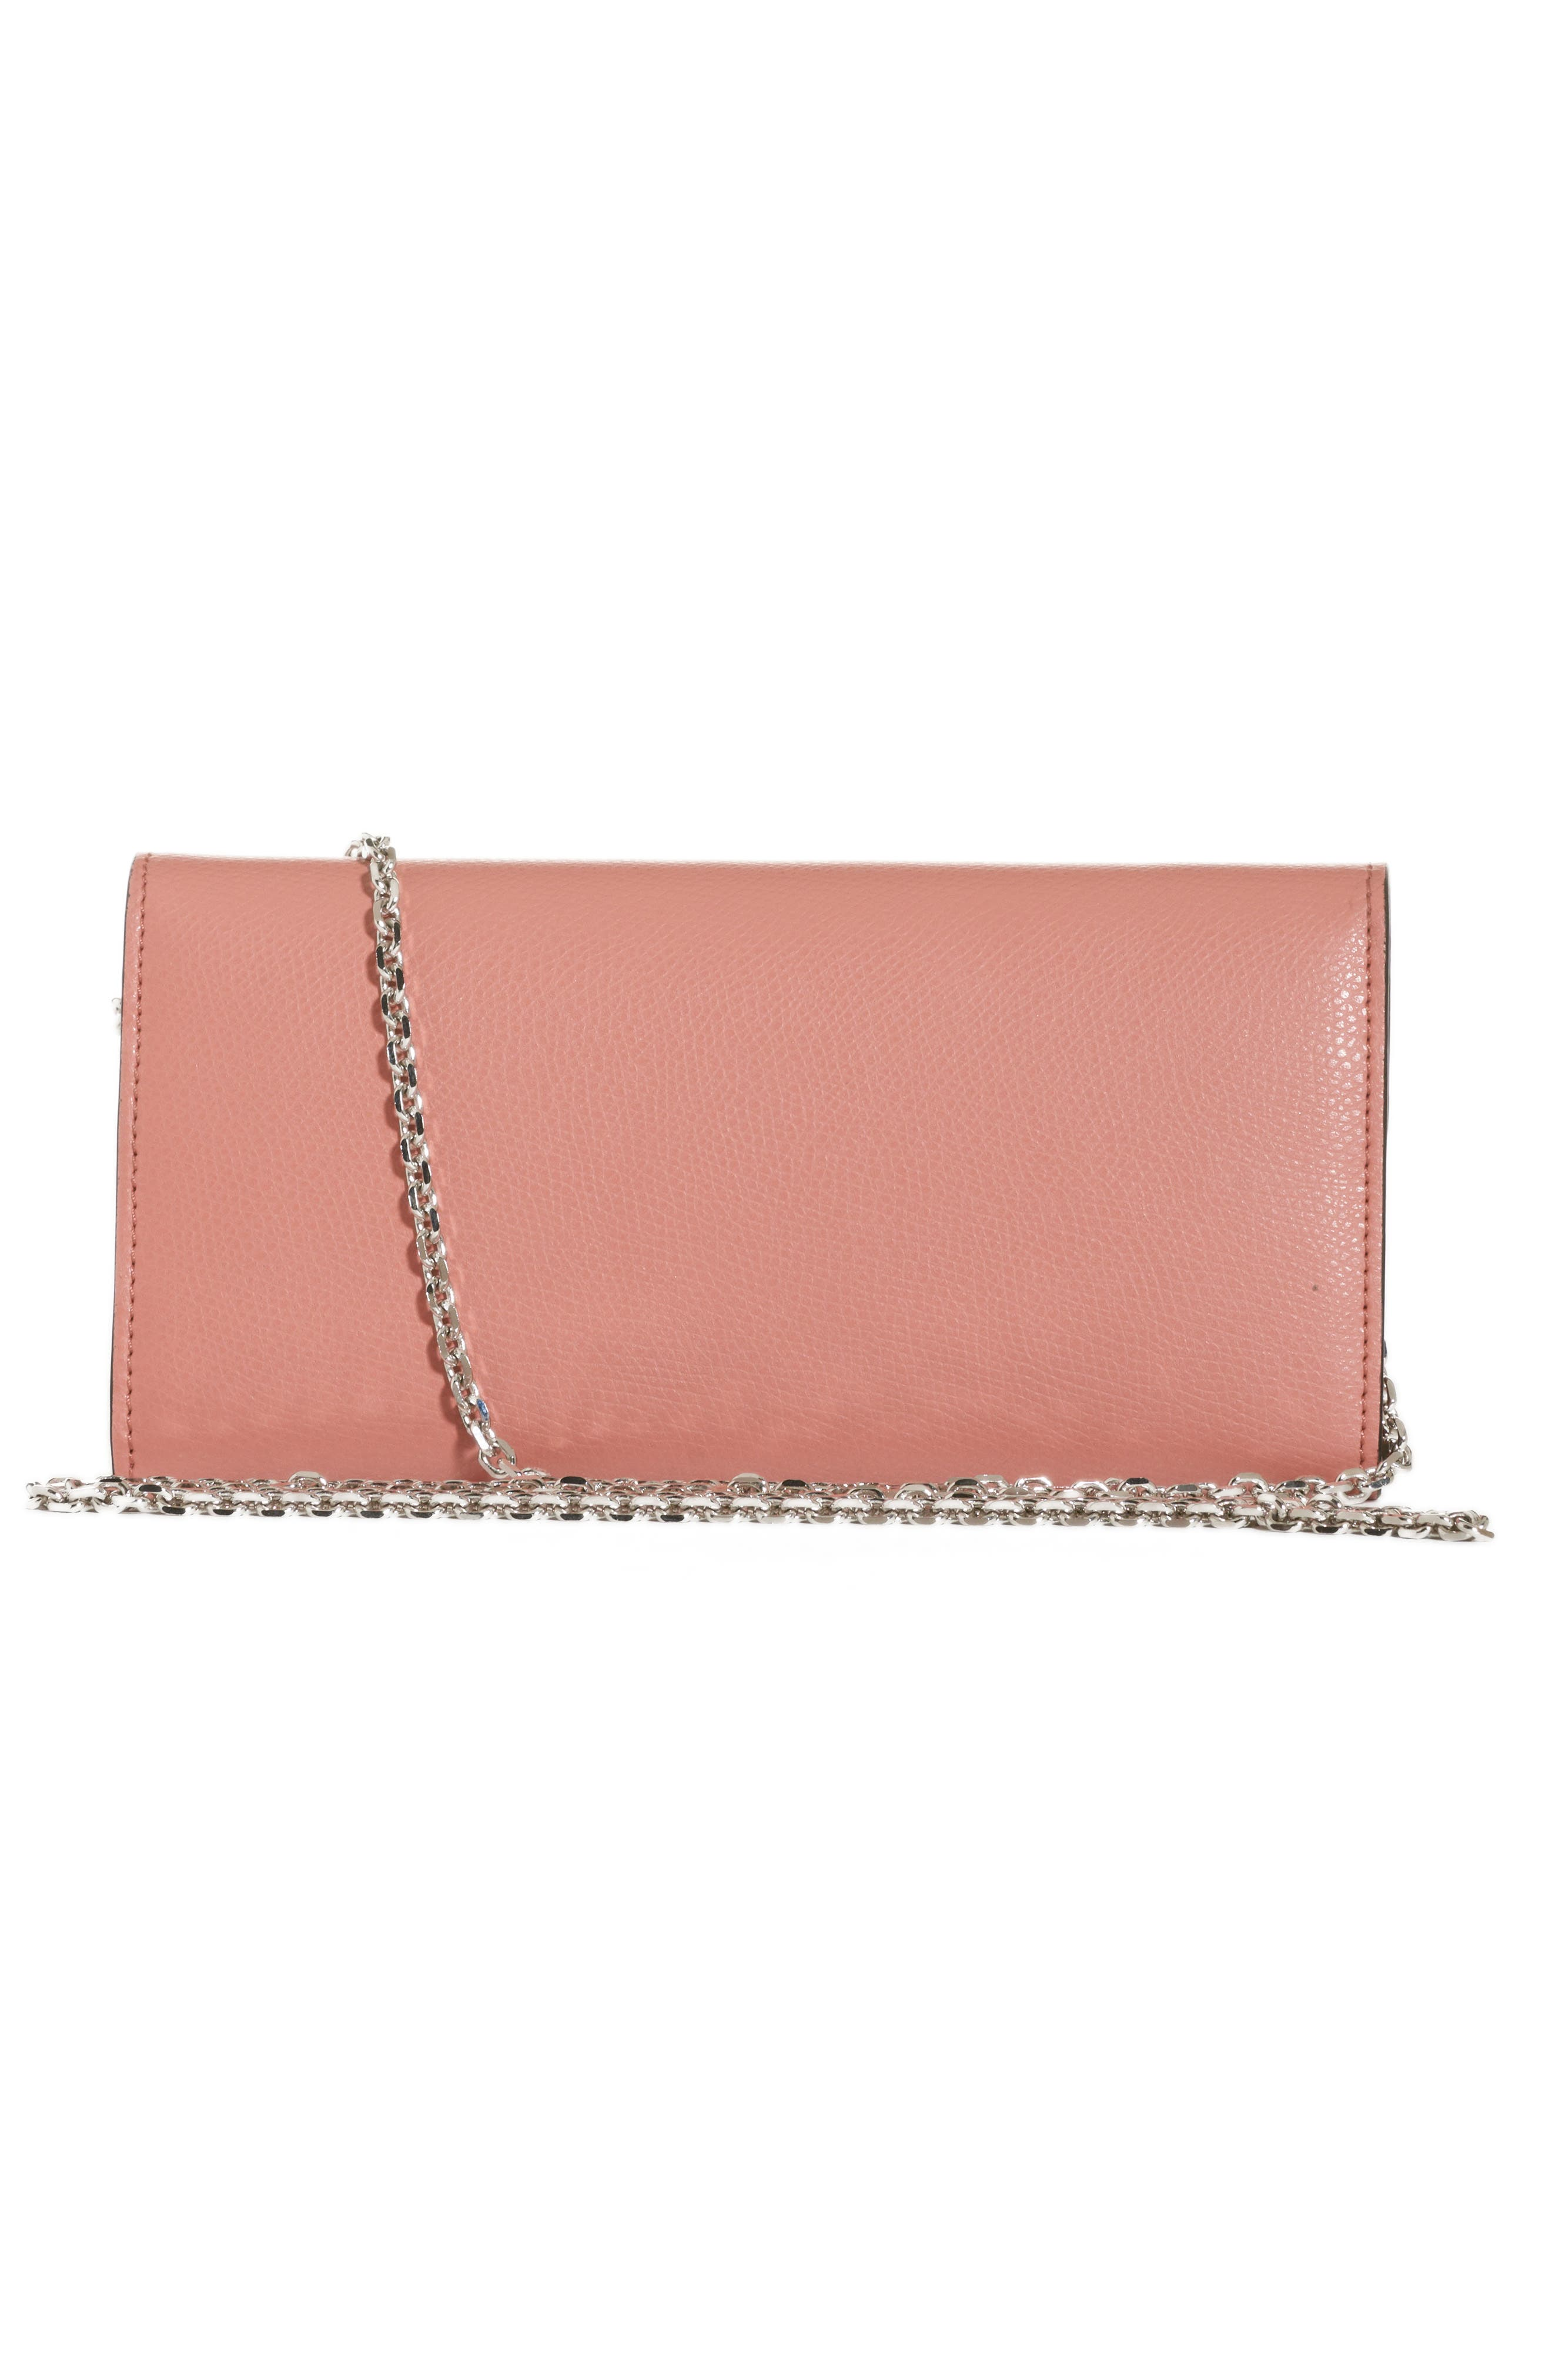 FENDI, Logo Calfskin Leather Continental Wallet on a Chain, Alternate thumbnail 2, color, MACARON/ PALLADIO